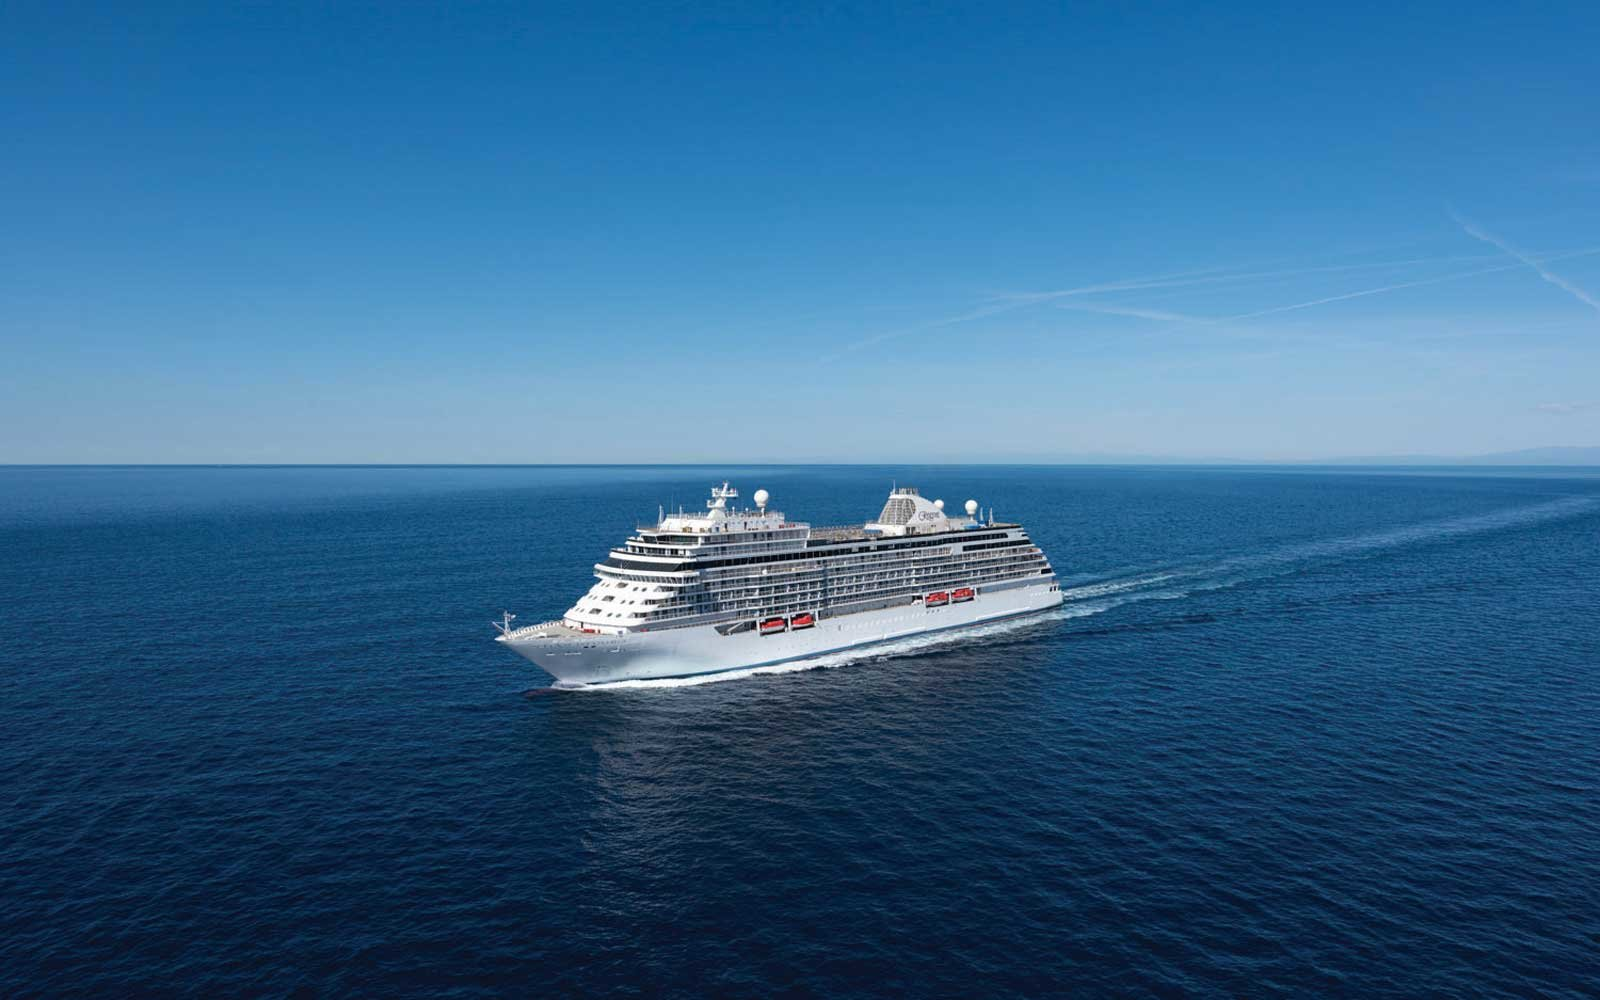 Romantic cruise to the Caribbean with Regent Seven Seas